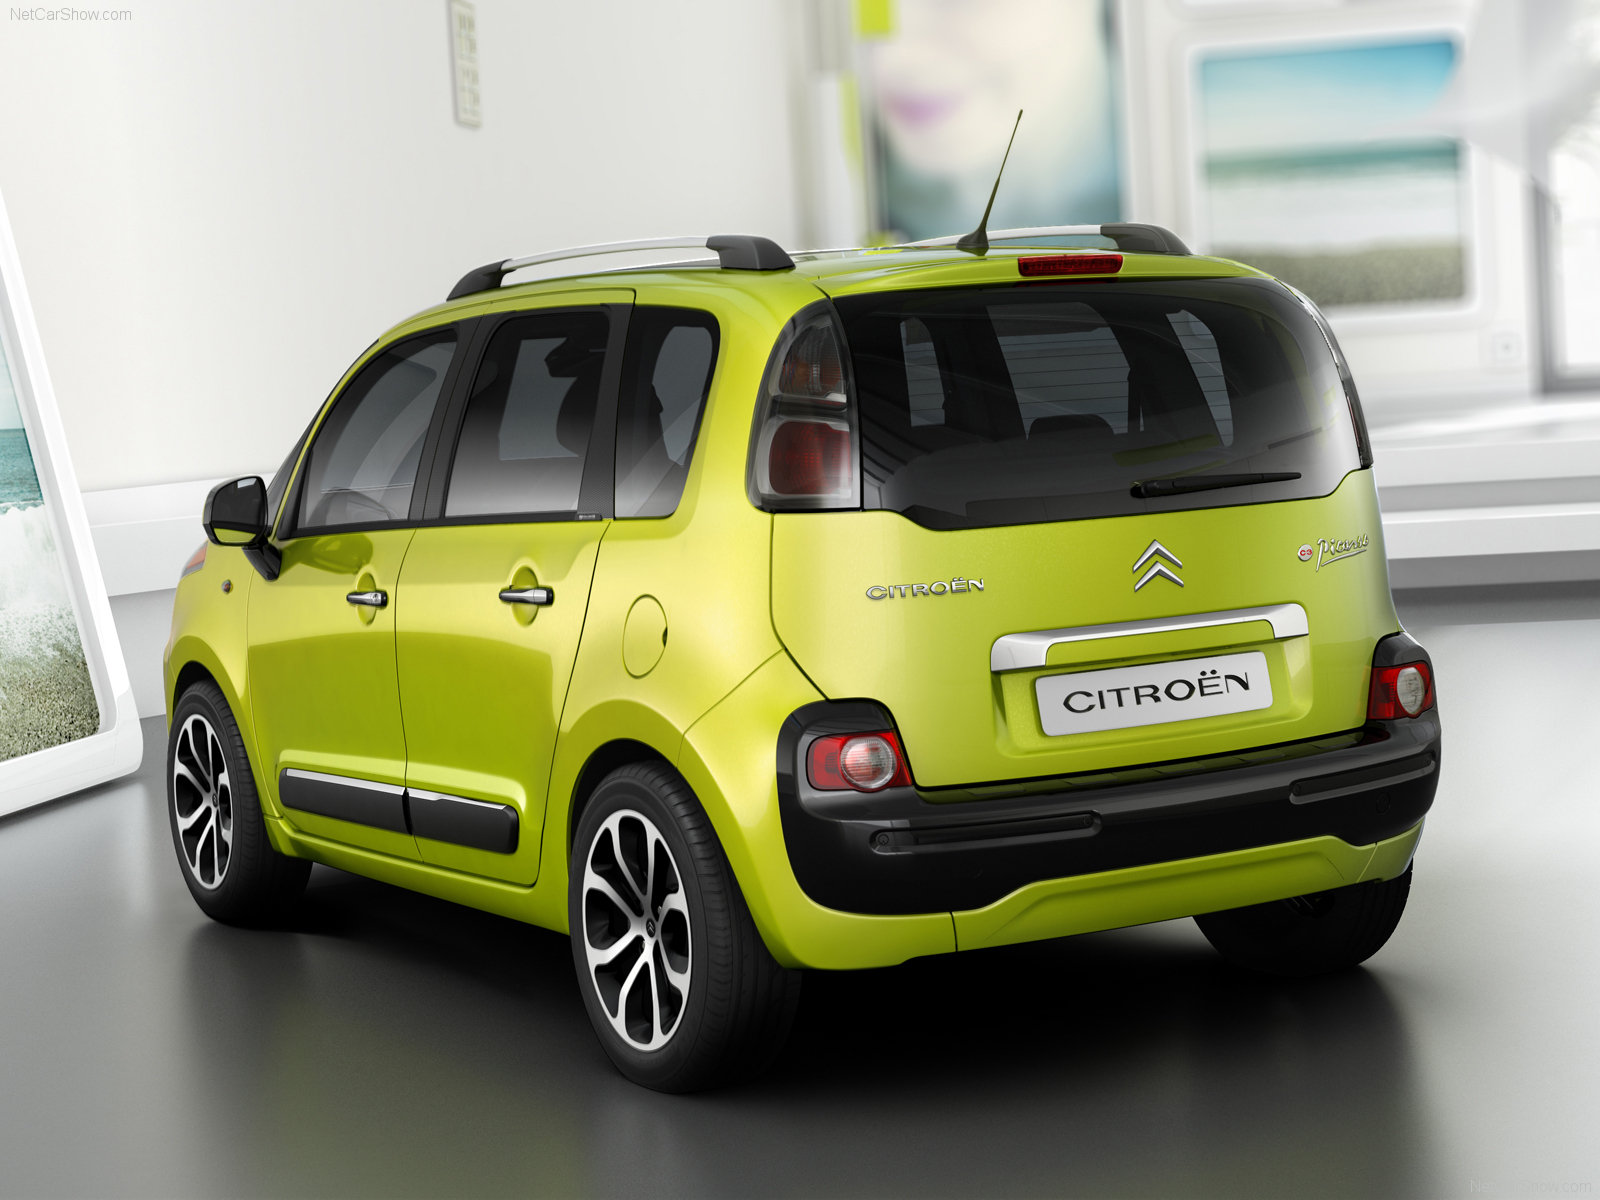 Citroen C3 Picasso photo #56356